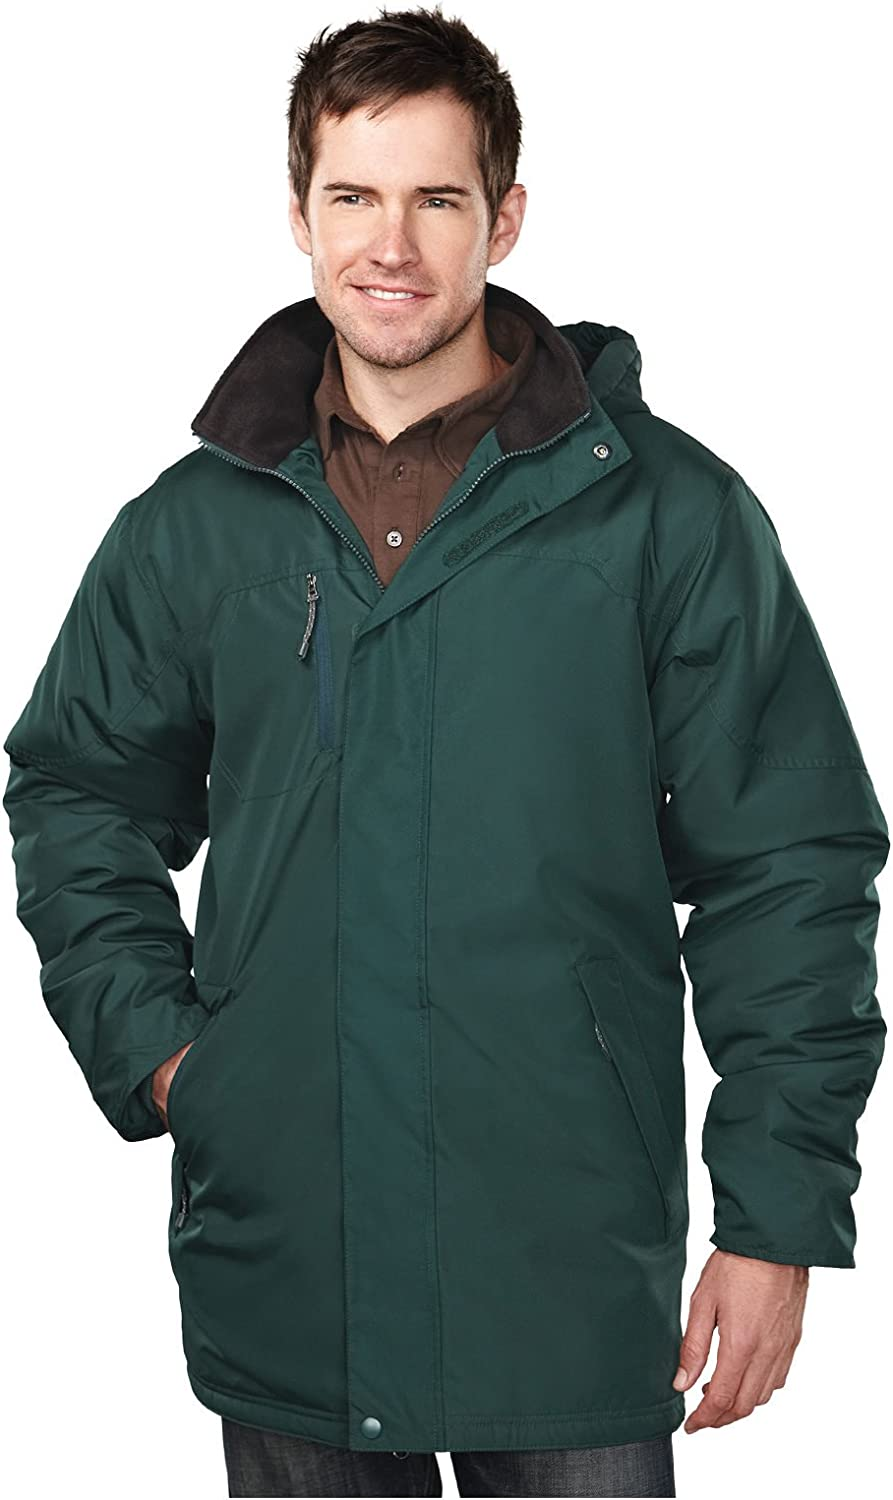 Tri-Mountain 9980 Mens 100% Polyester Long Sleeve jacket With Water Resistent - Forest Green/Black - 4XL